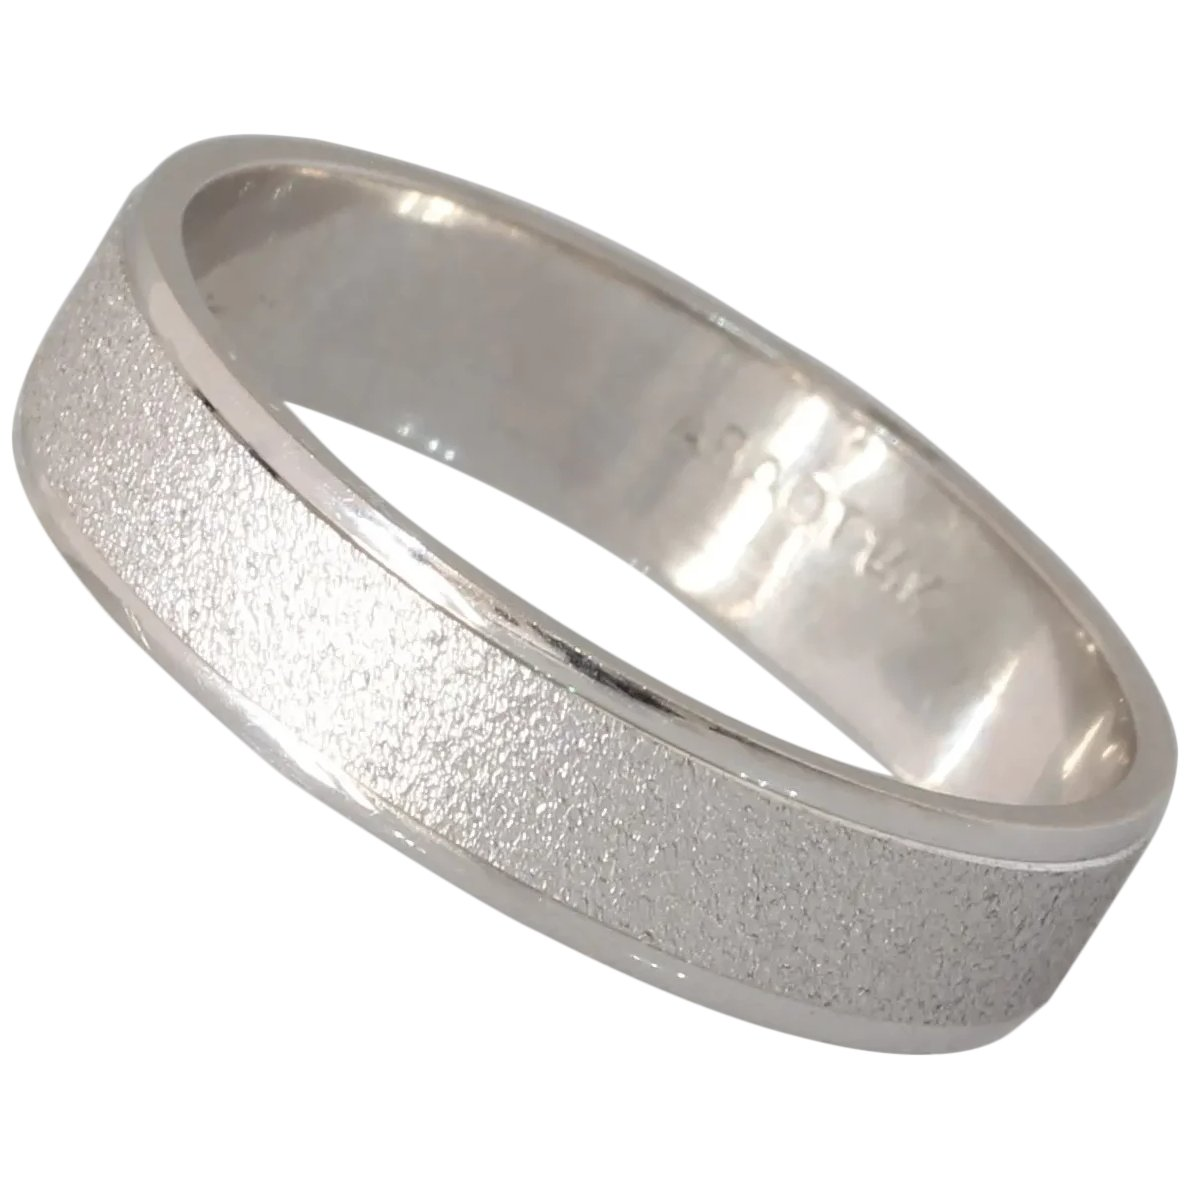 It is a picture of Vintage Mens Wedding Band Ring 39K White Gold Vintage Jewelry Israel